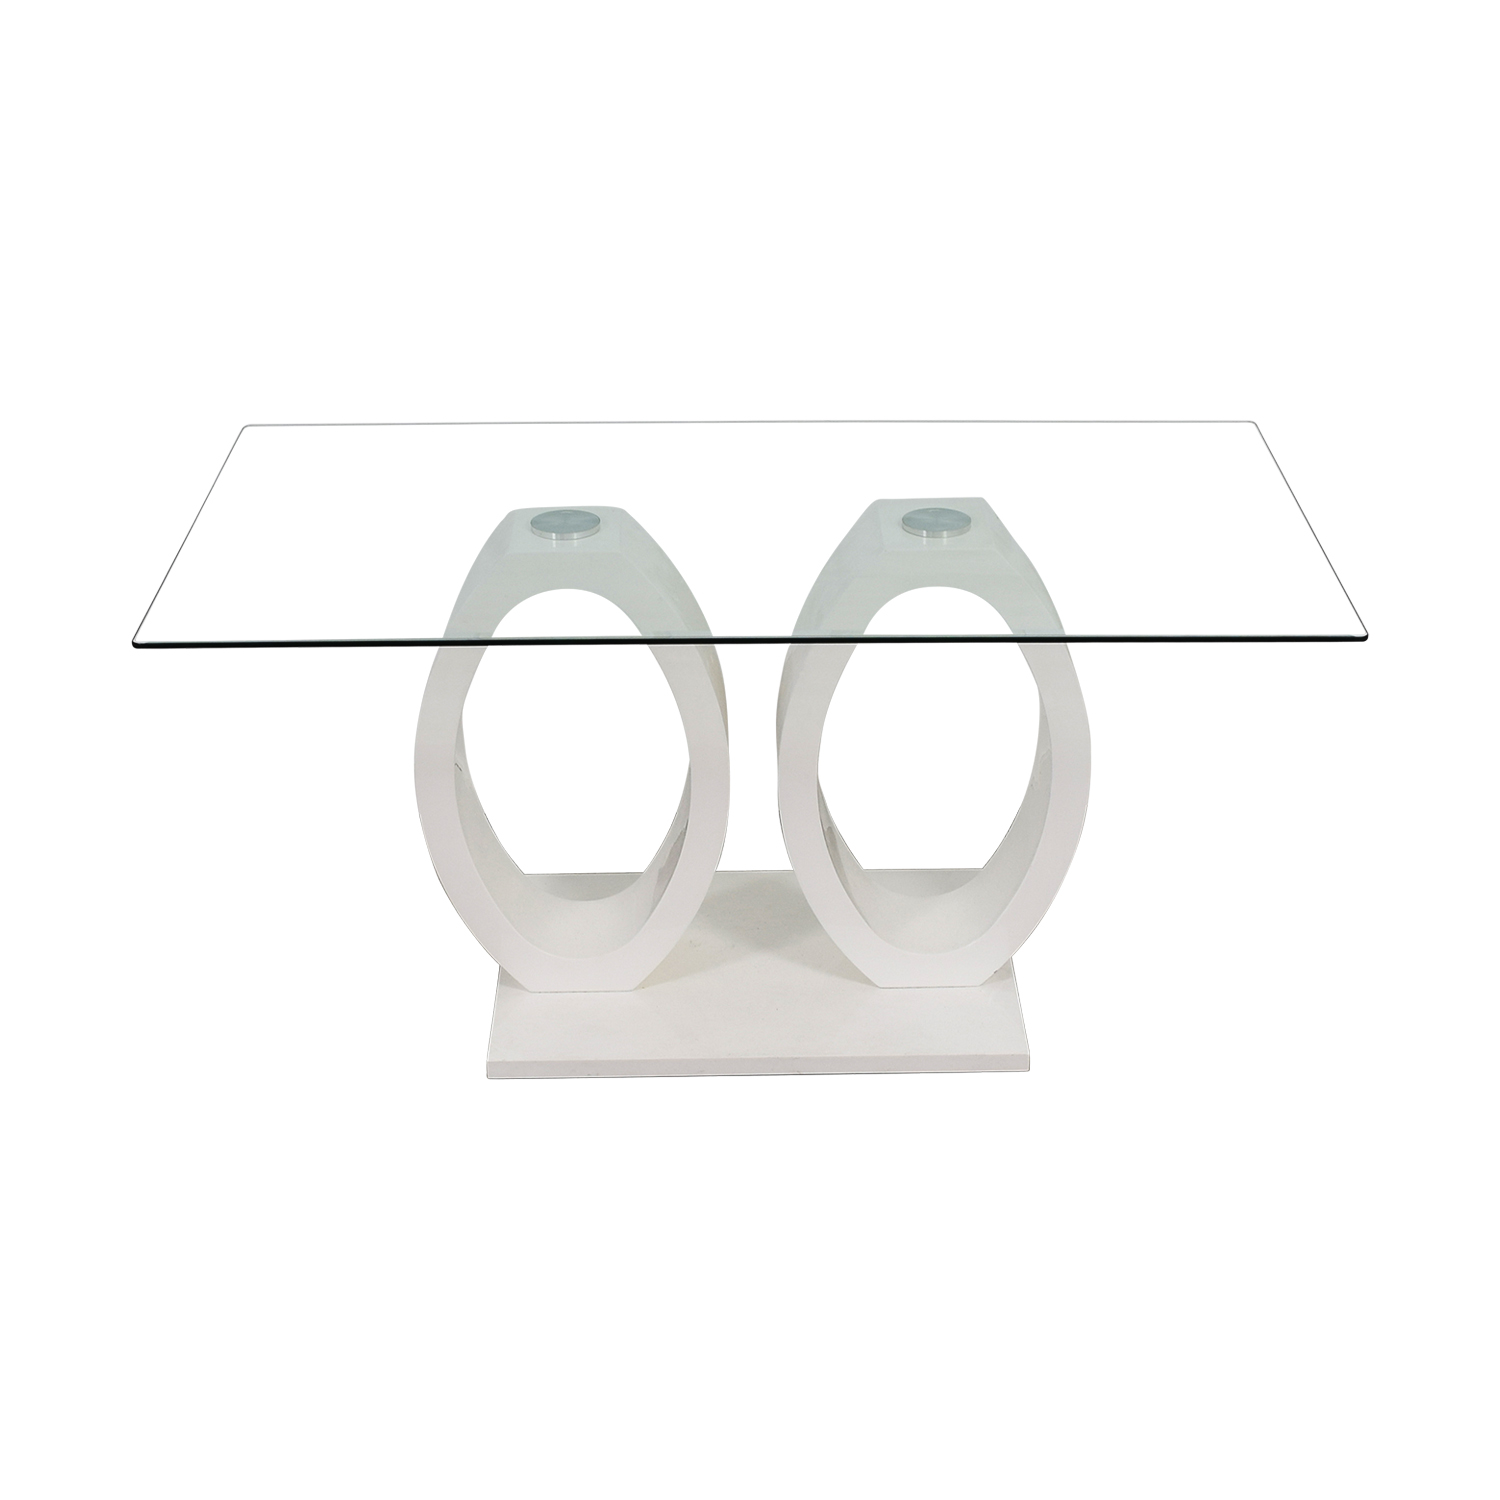 White Oval Rings and Rectangular Glass Contemporary Table nj